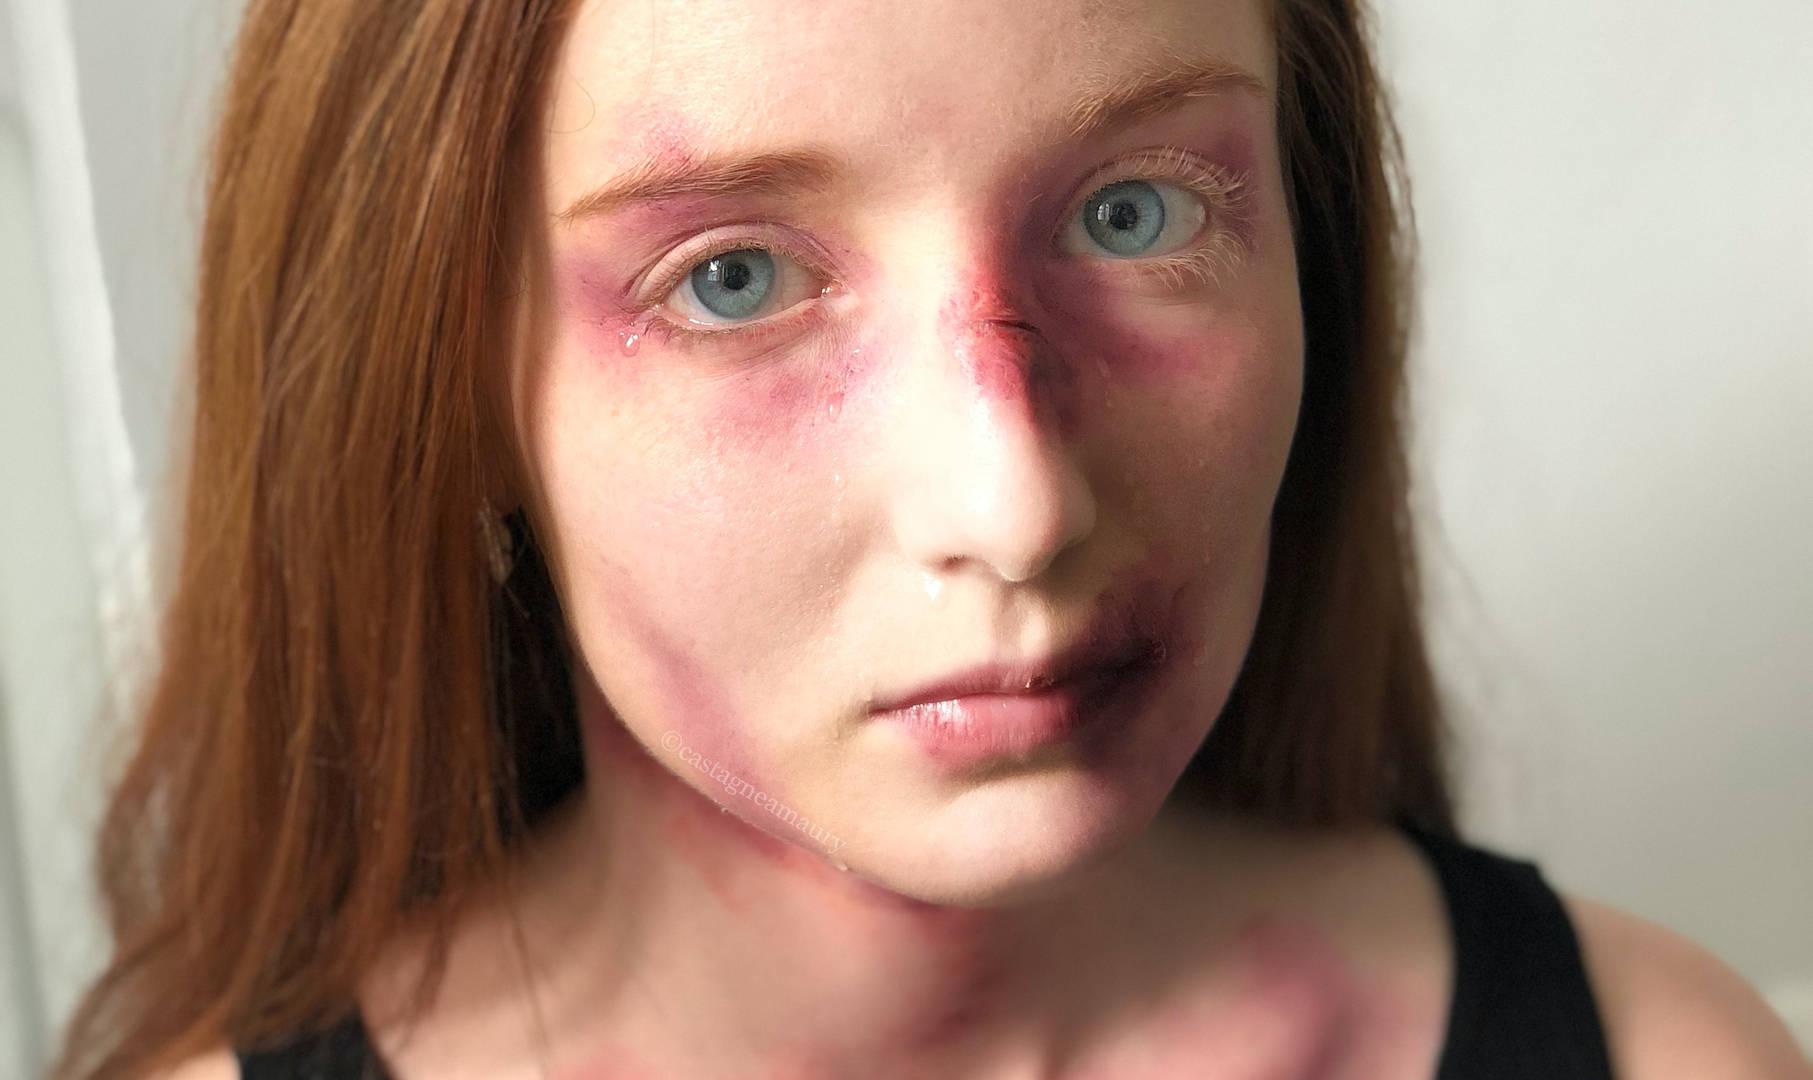 make-up-bruises-woman-special-effects-so